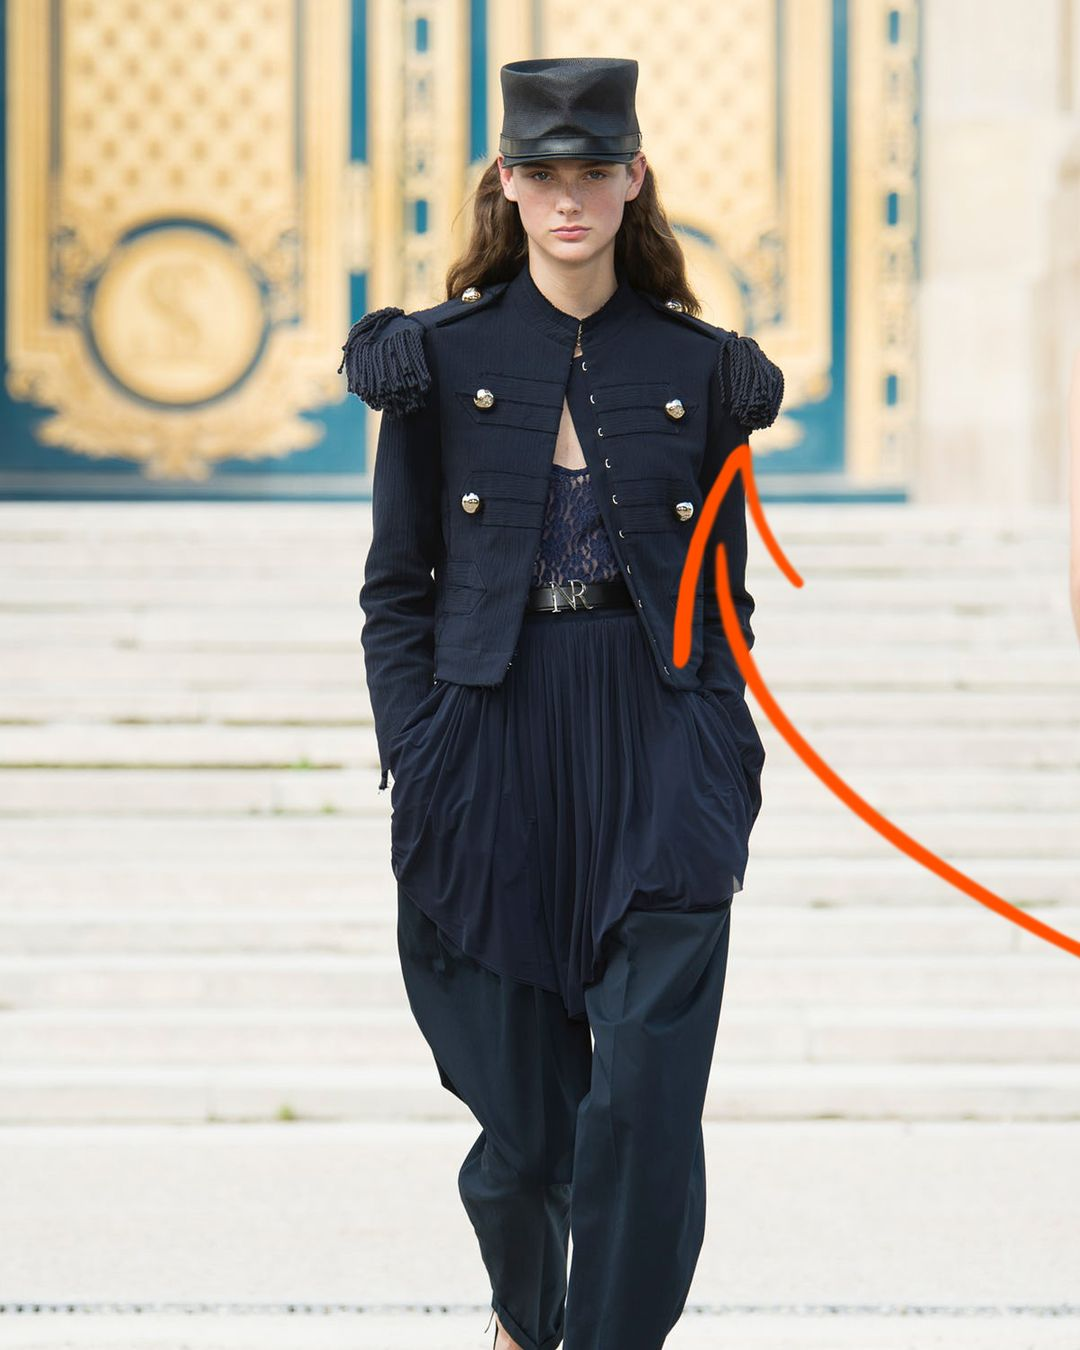 It's FashionFactsFriday and today's term is 'epaulet